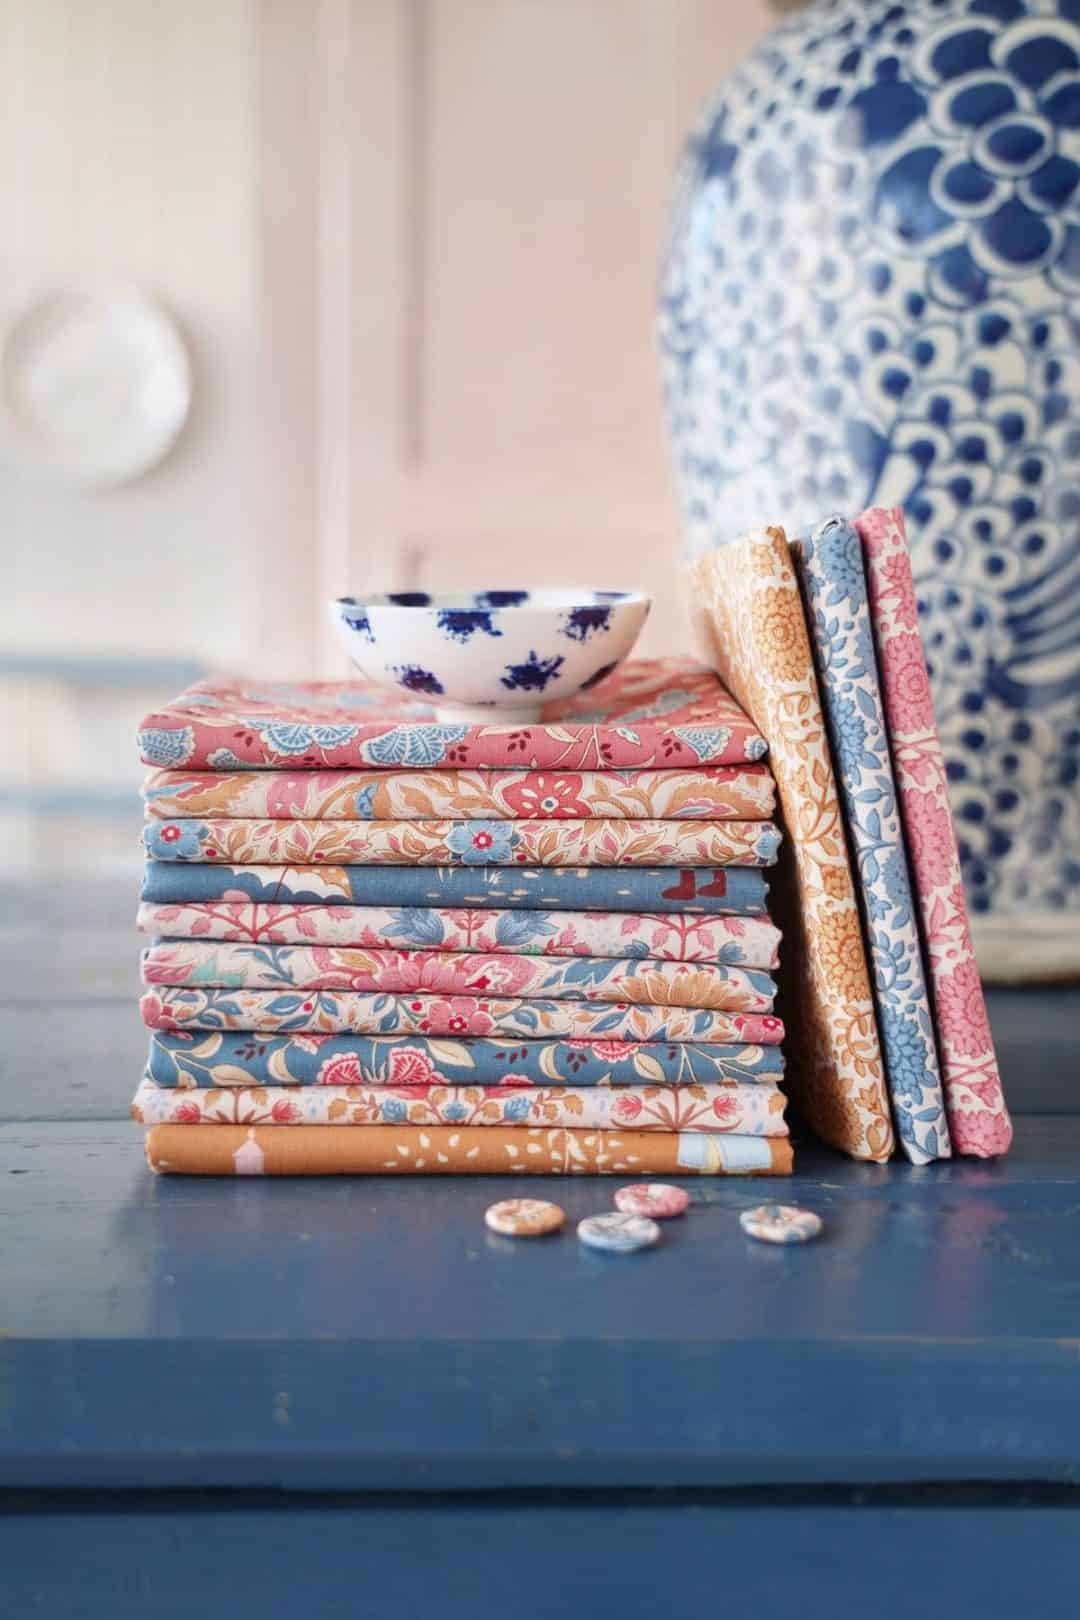 tilda fabrics windy days new collection of designs for autumn 2021 - just one of the beautiful collection of materials by Tilda that we love and have shared all the links you need to buy them and get sewing! #tilda #fabrics #windydays #tildafabrics